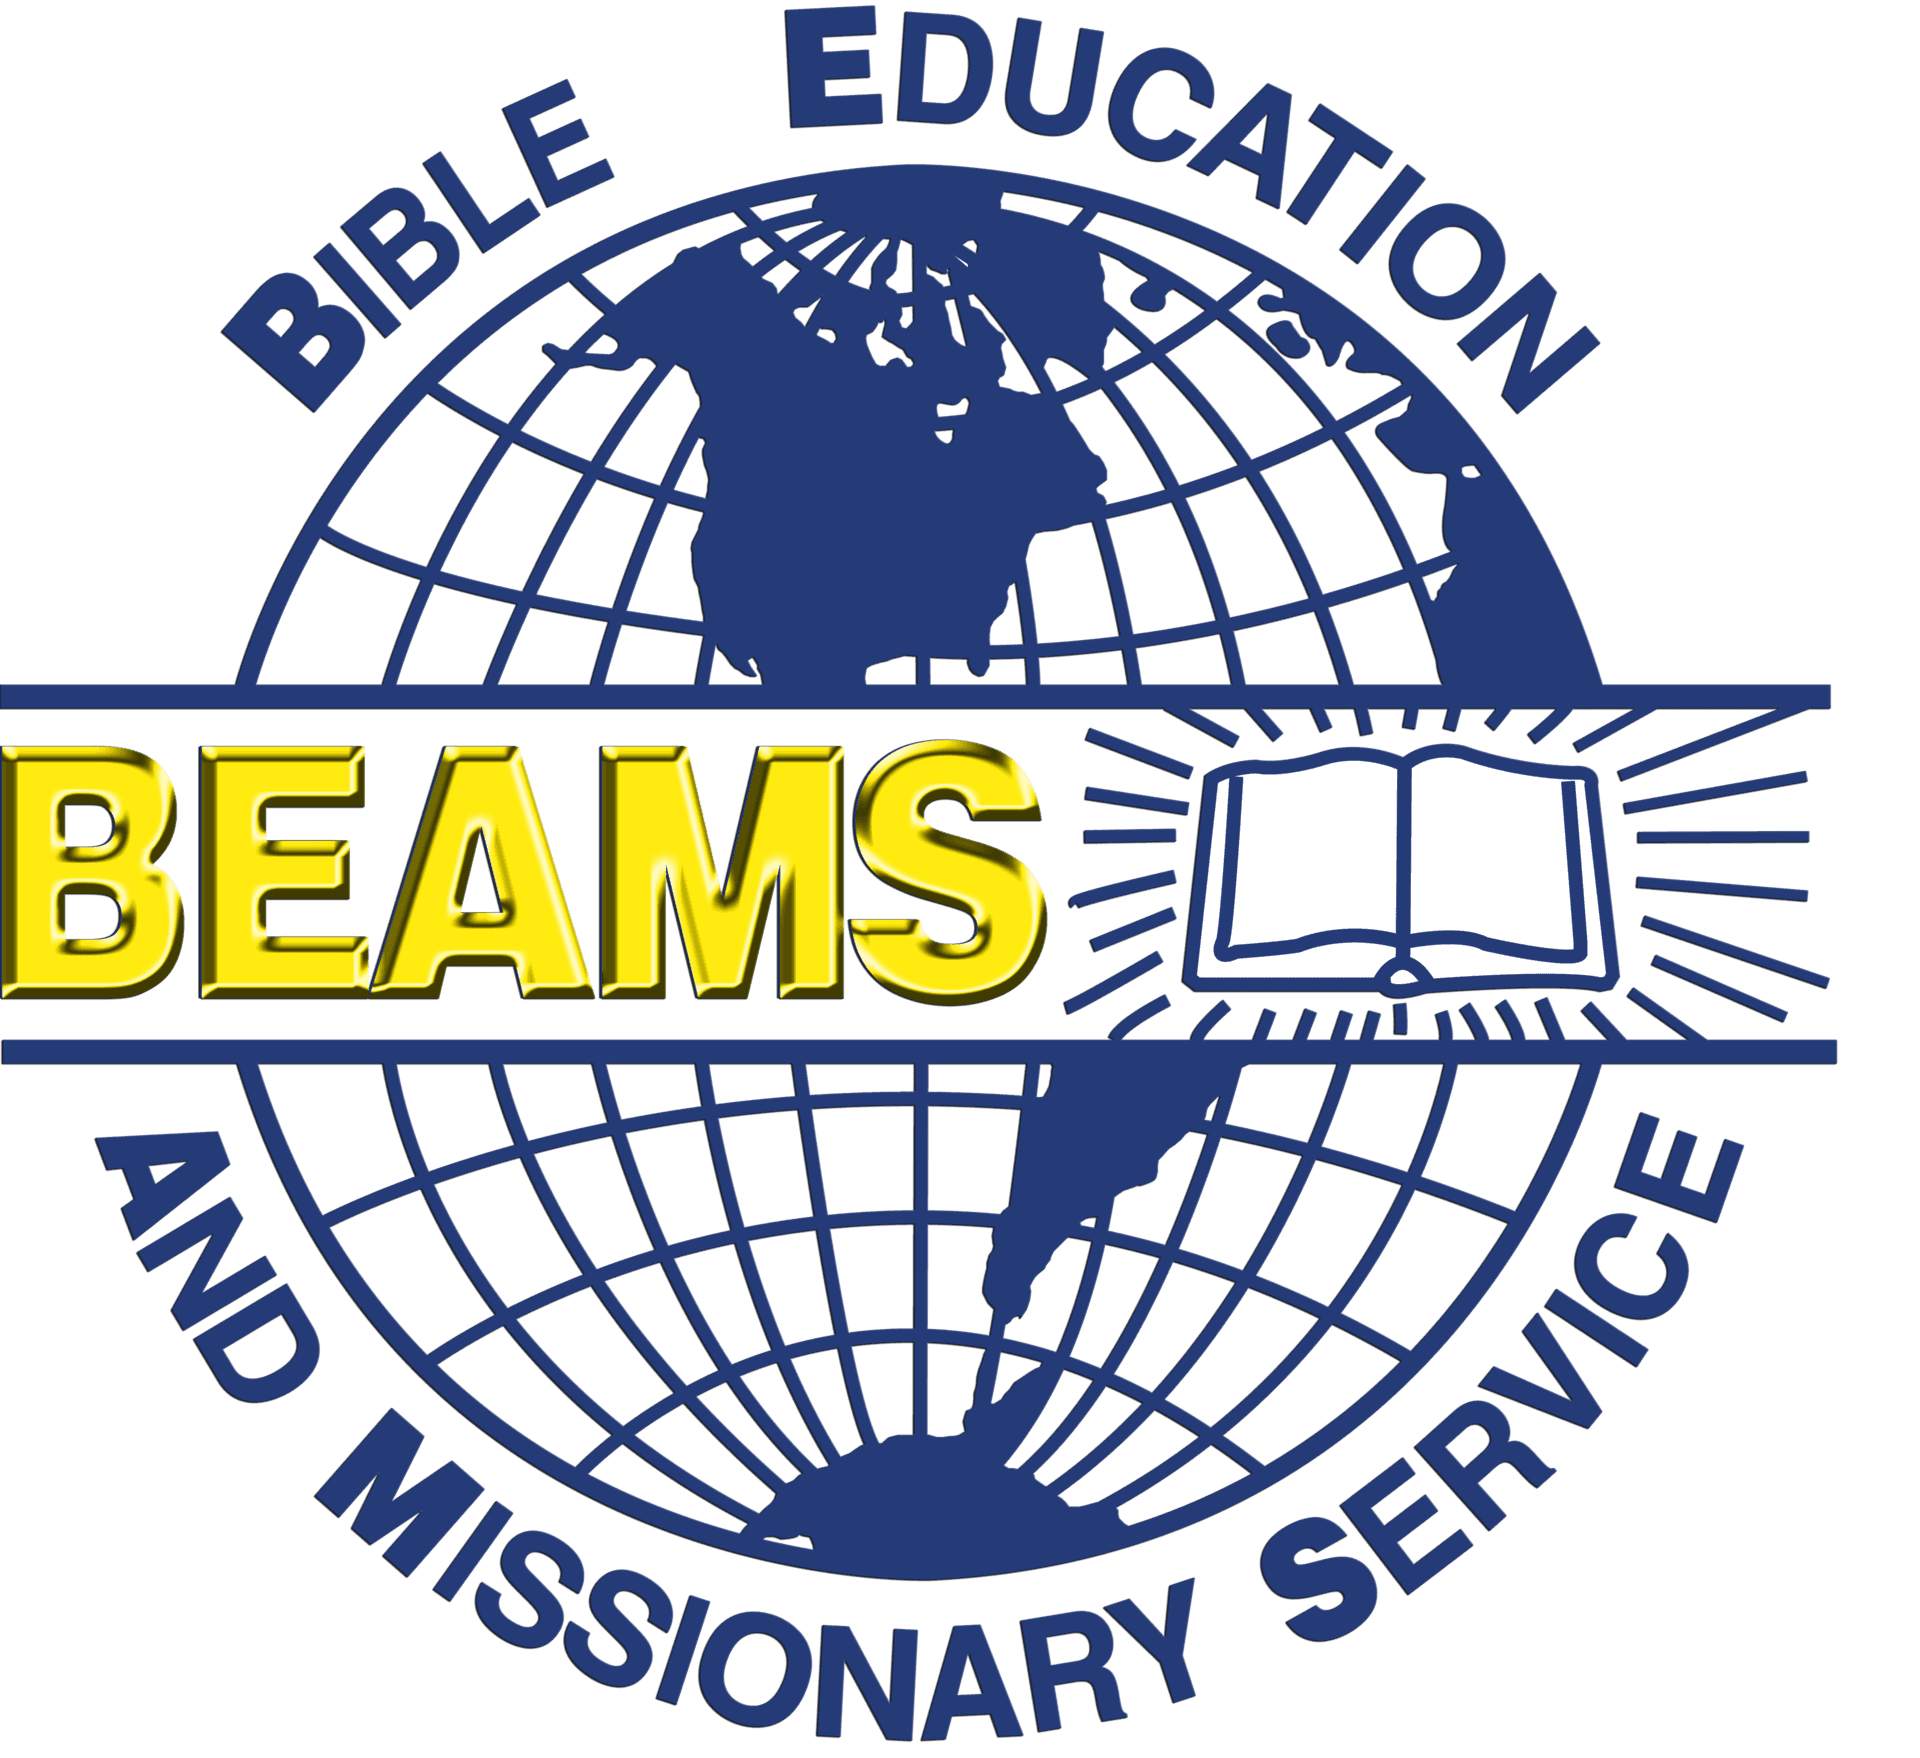 BEAMS BIBLE MINISTRY